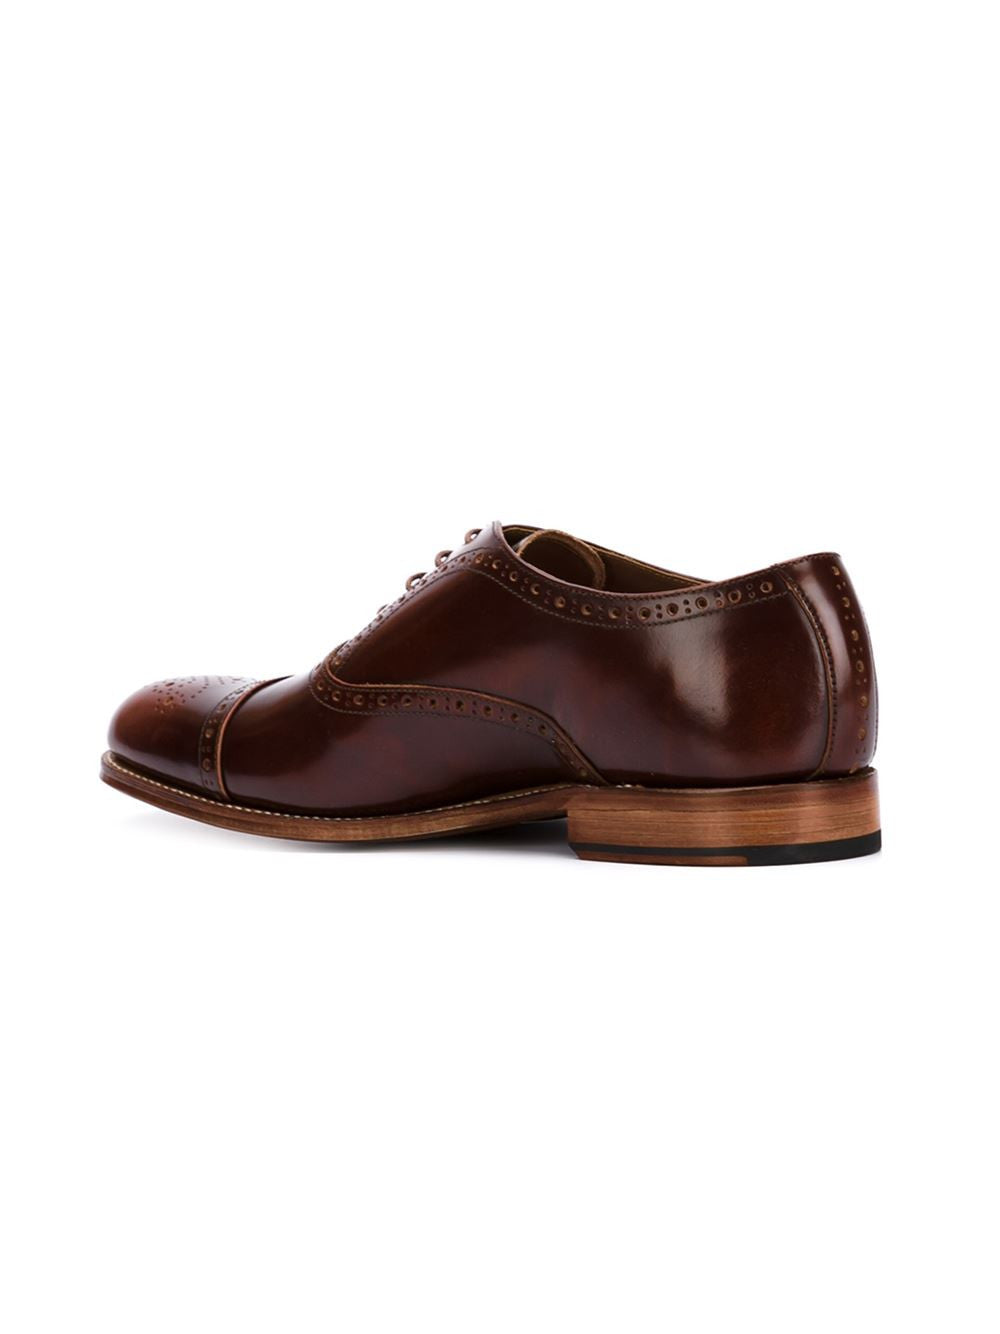 Leather Brogue | 5297/282 MATTHEW